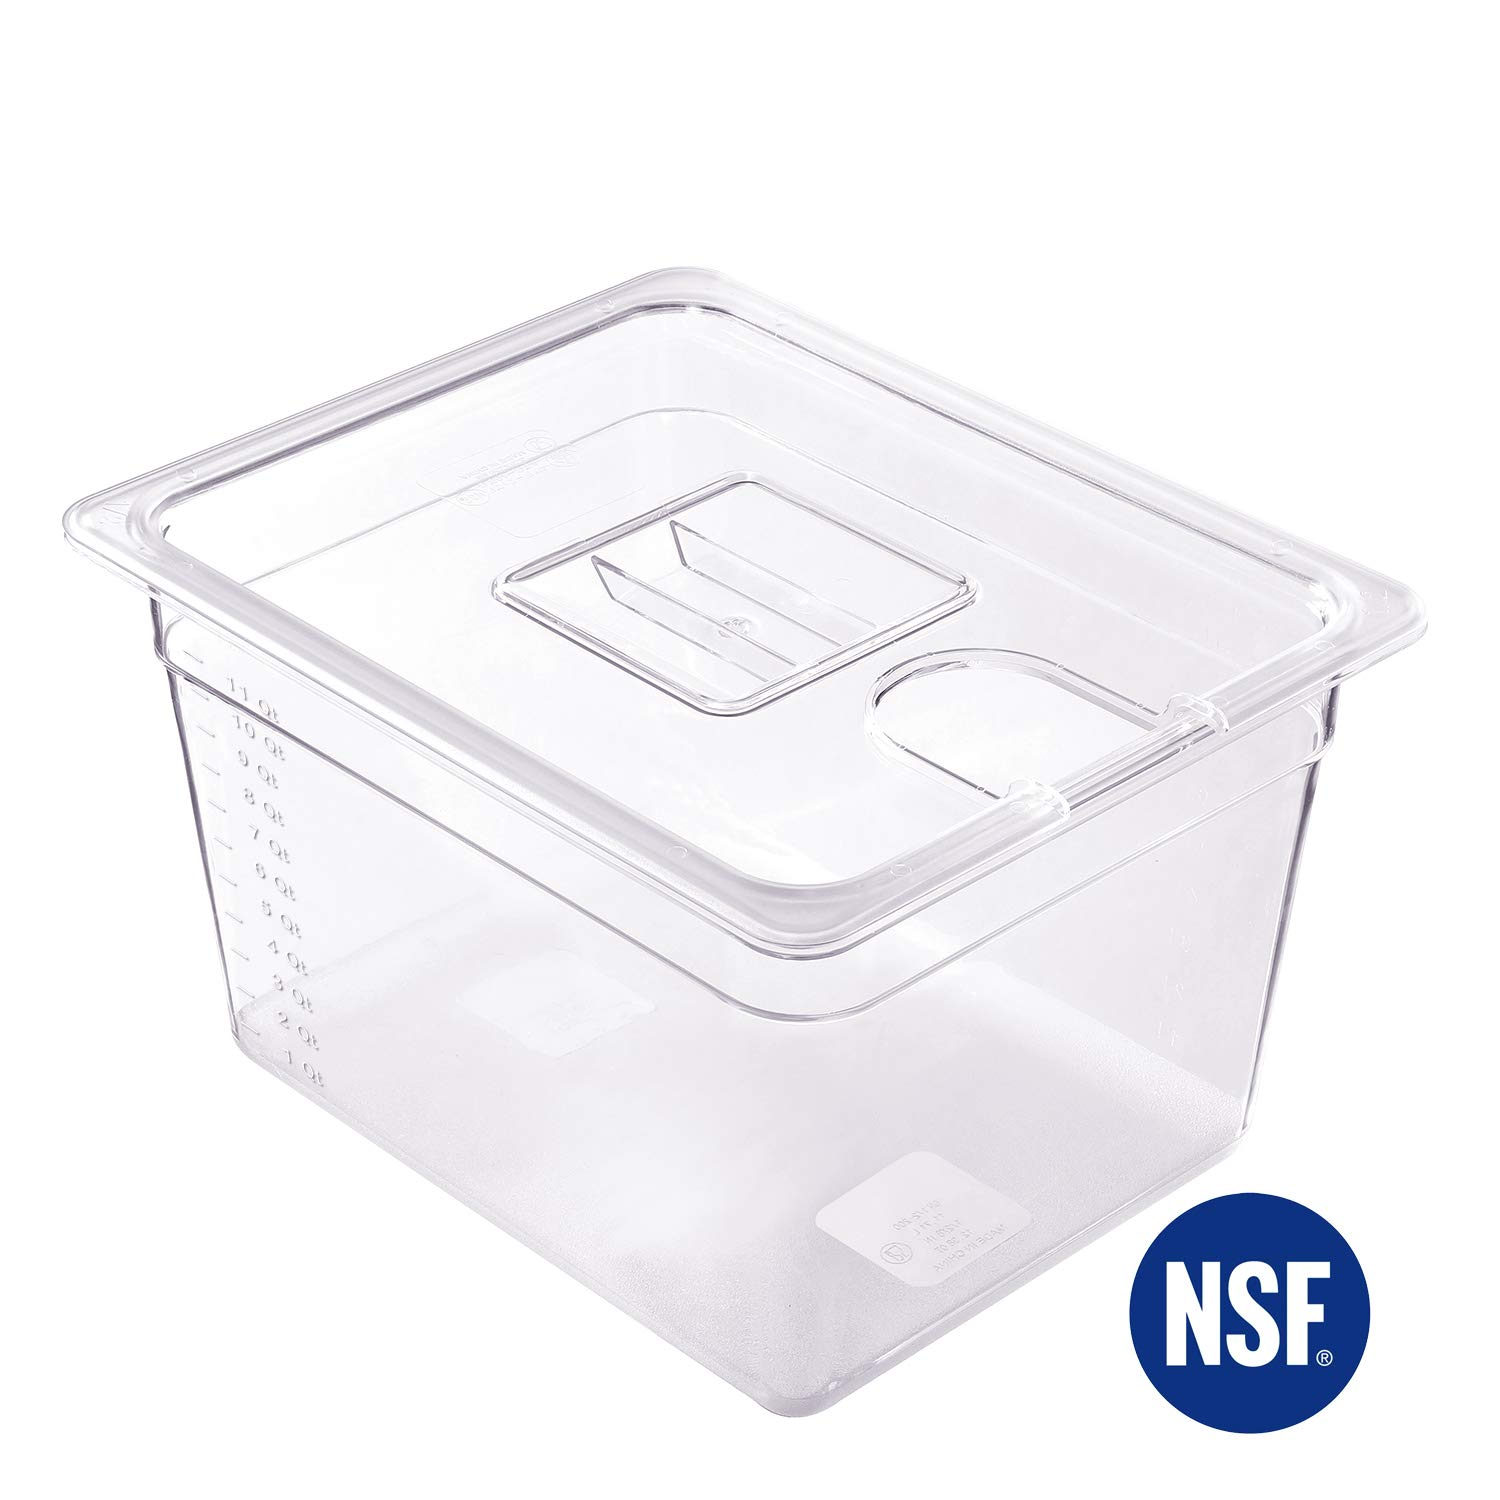 Anmade Sous Vide Container with Notched Lid 12 Quart Cooking Transparent Measurement Marks Storage Container for Sous Vide Immersion Circulator